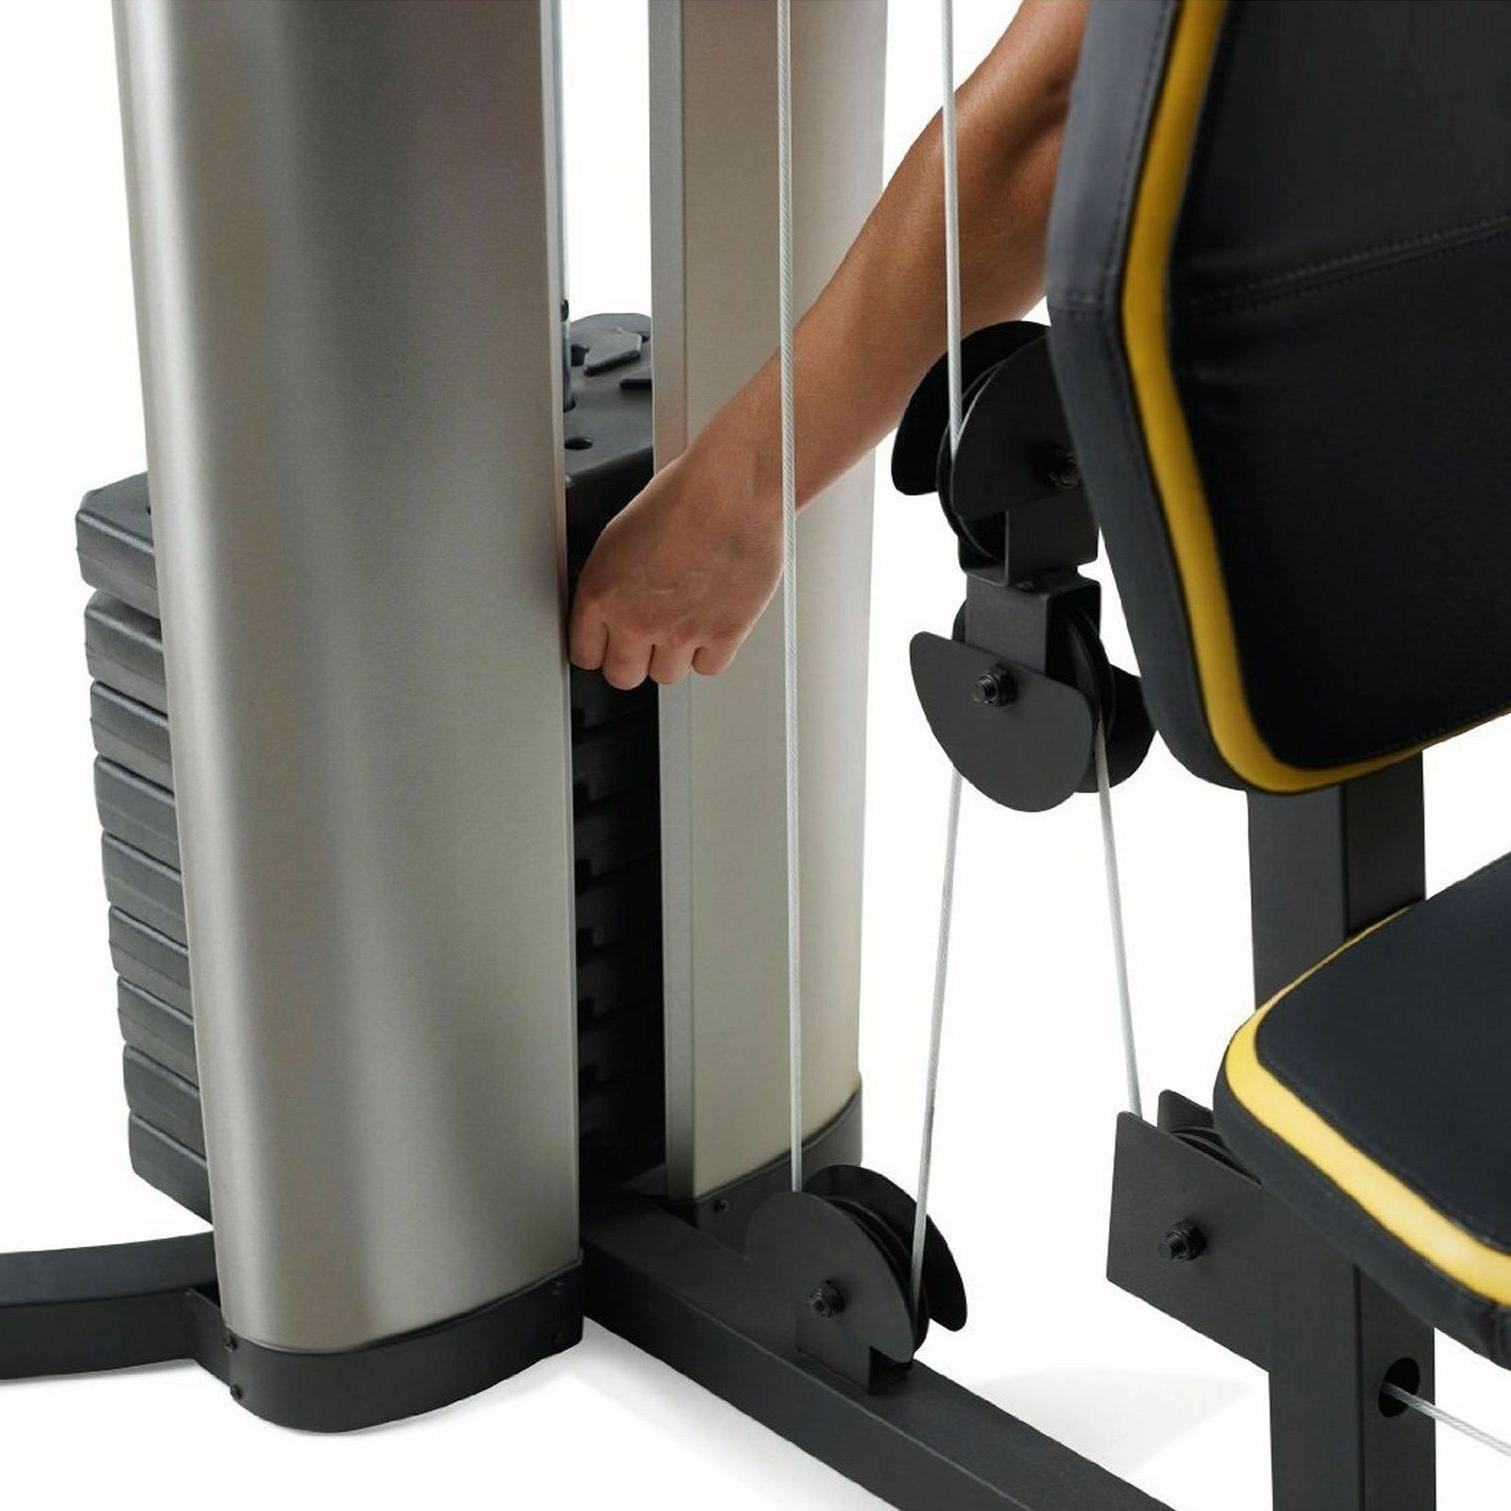 Gym Home Equipment